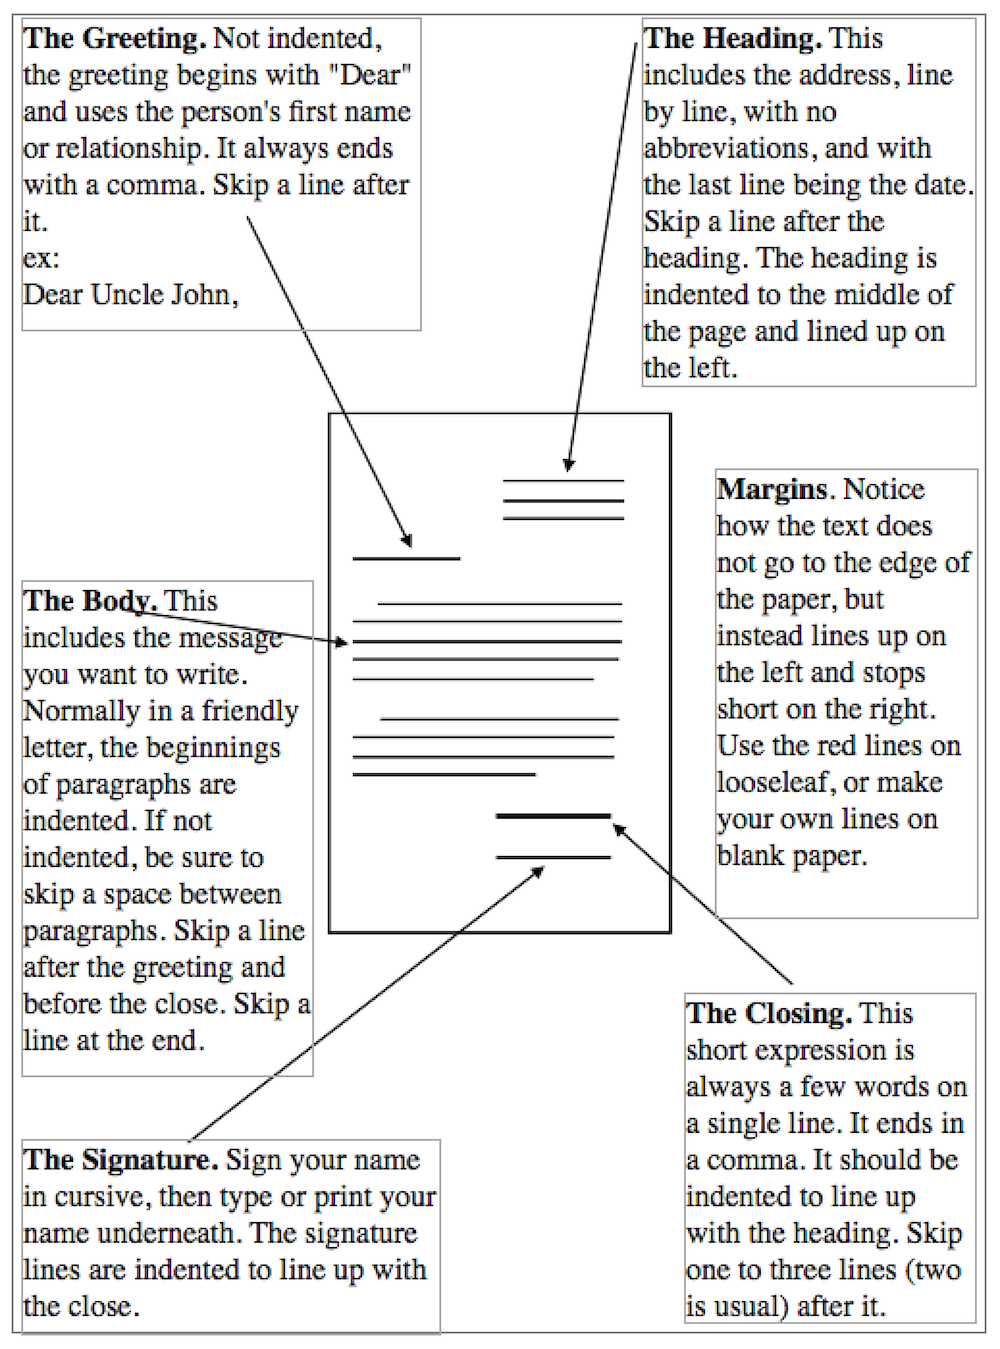 Personal Letter Format The Writers Guide to the Galaxy